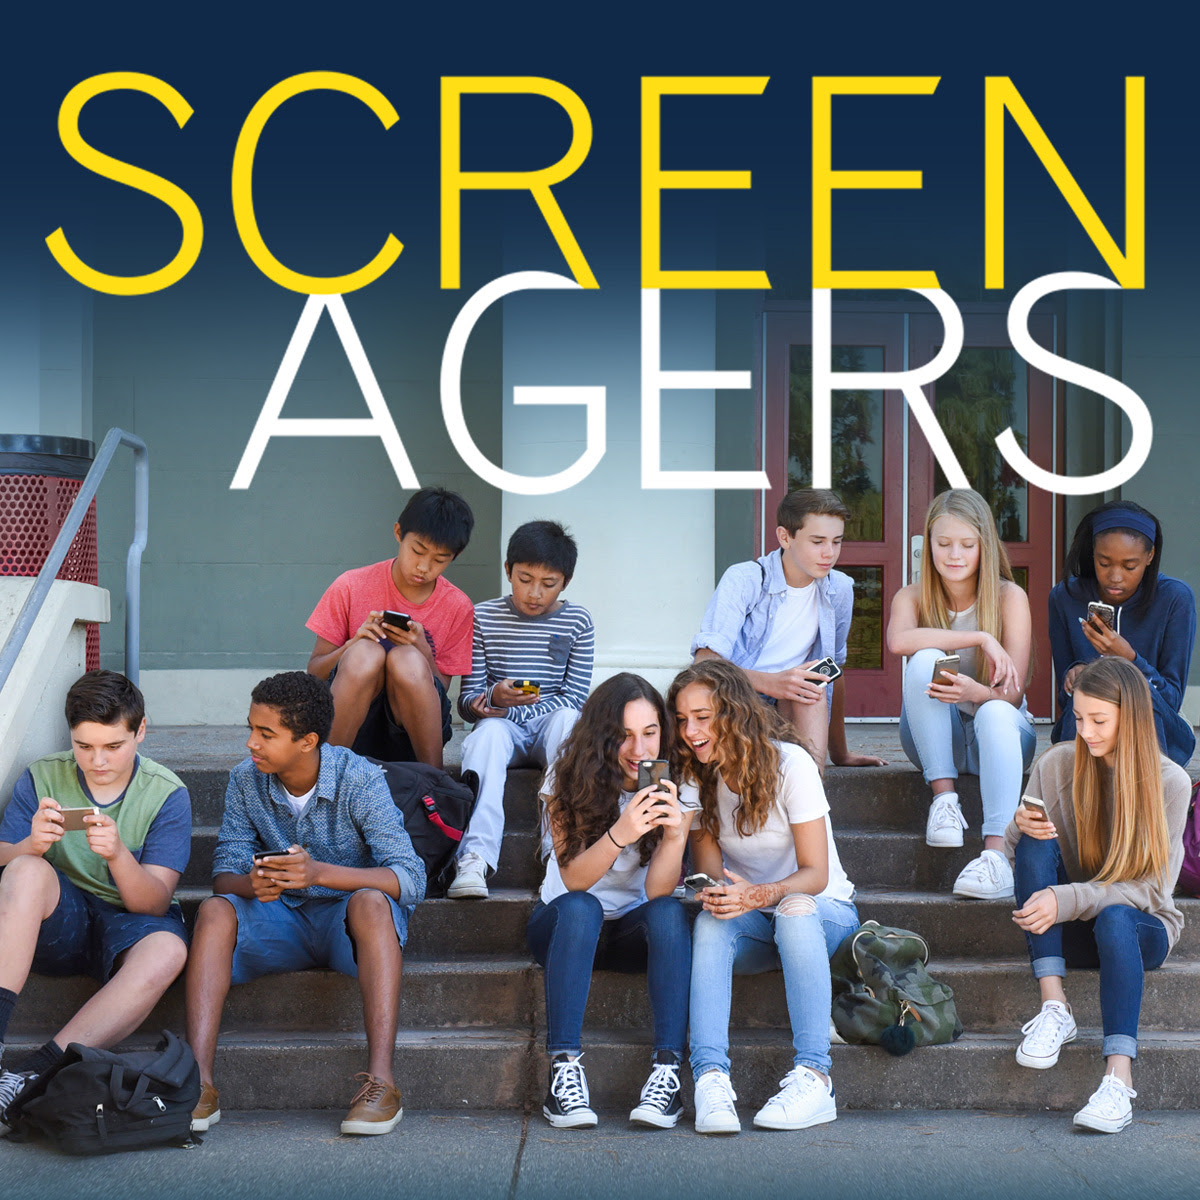 Screenagers Film Presented By Nutrition Works